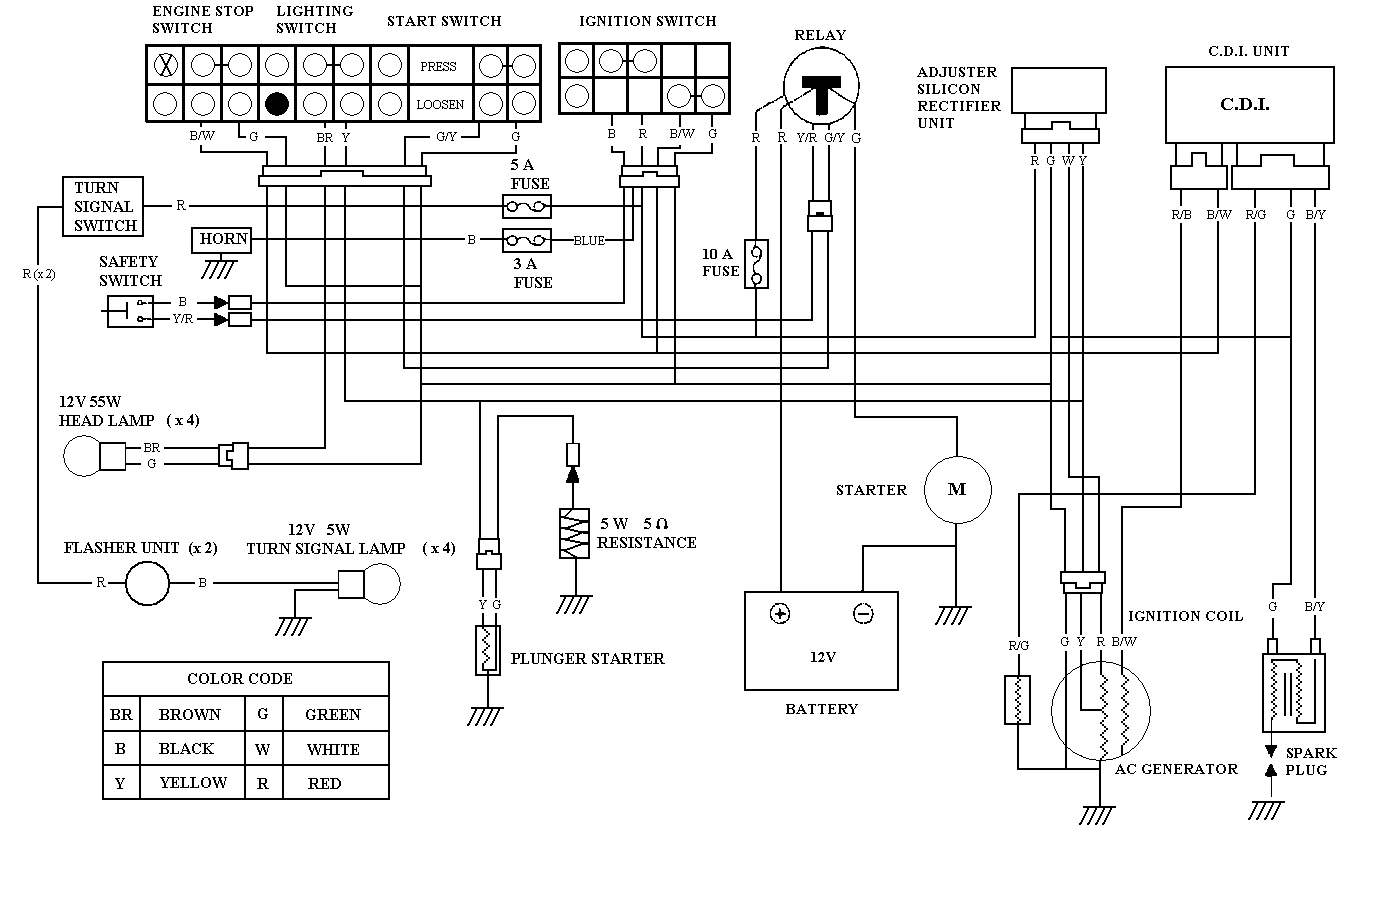 50cc moped wiring diagram headlights cd 7108  scooter wiring diagram further ignition wiring diagram on  scooter wiring diagram further ignition